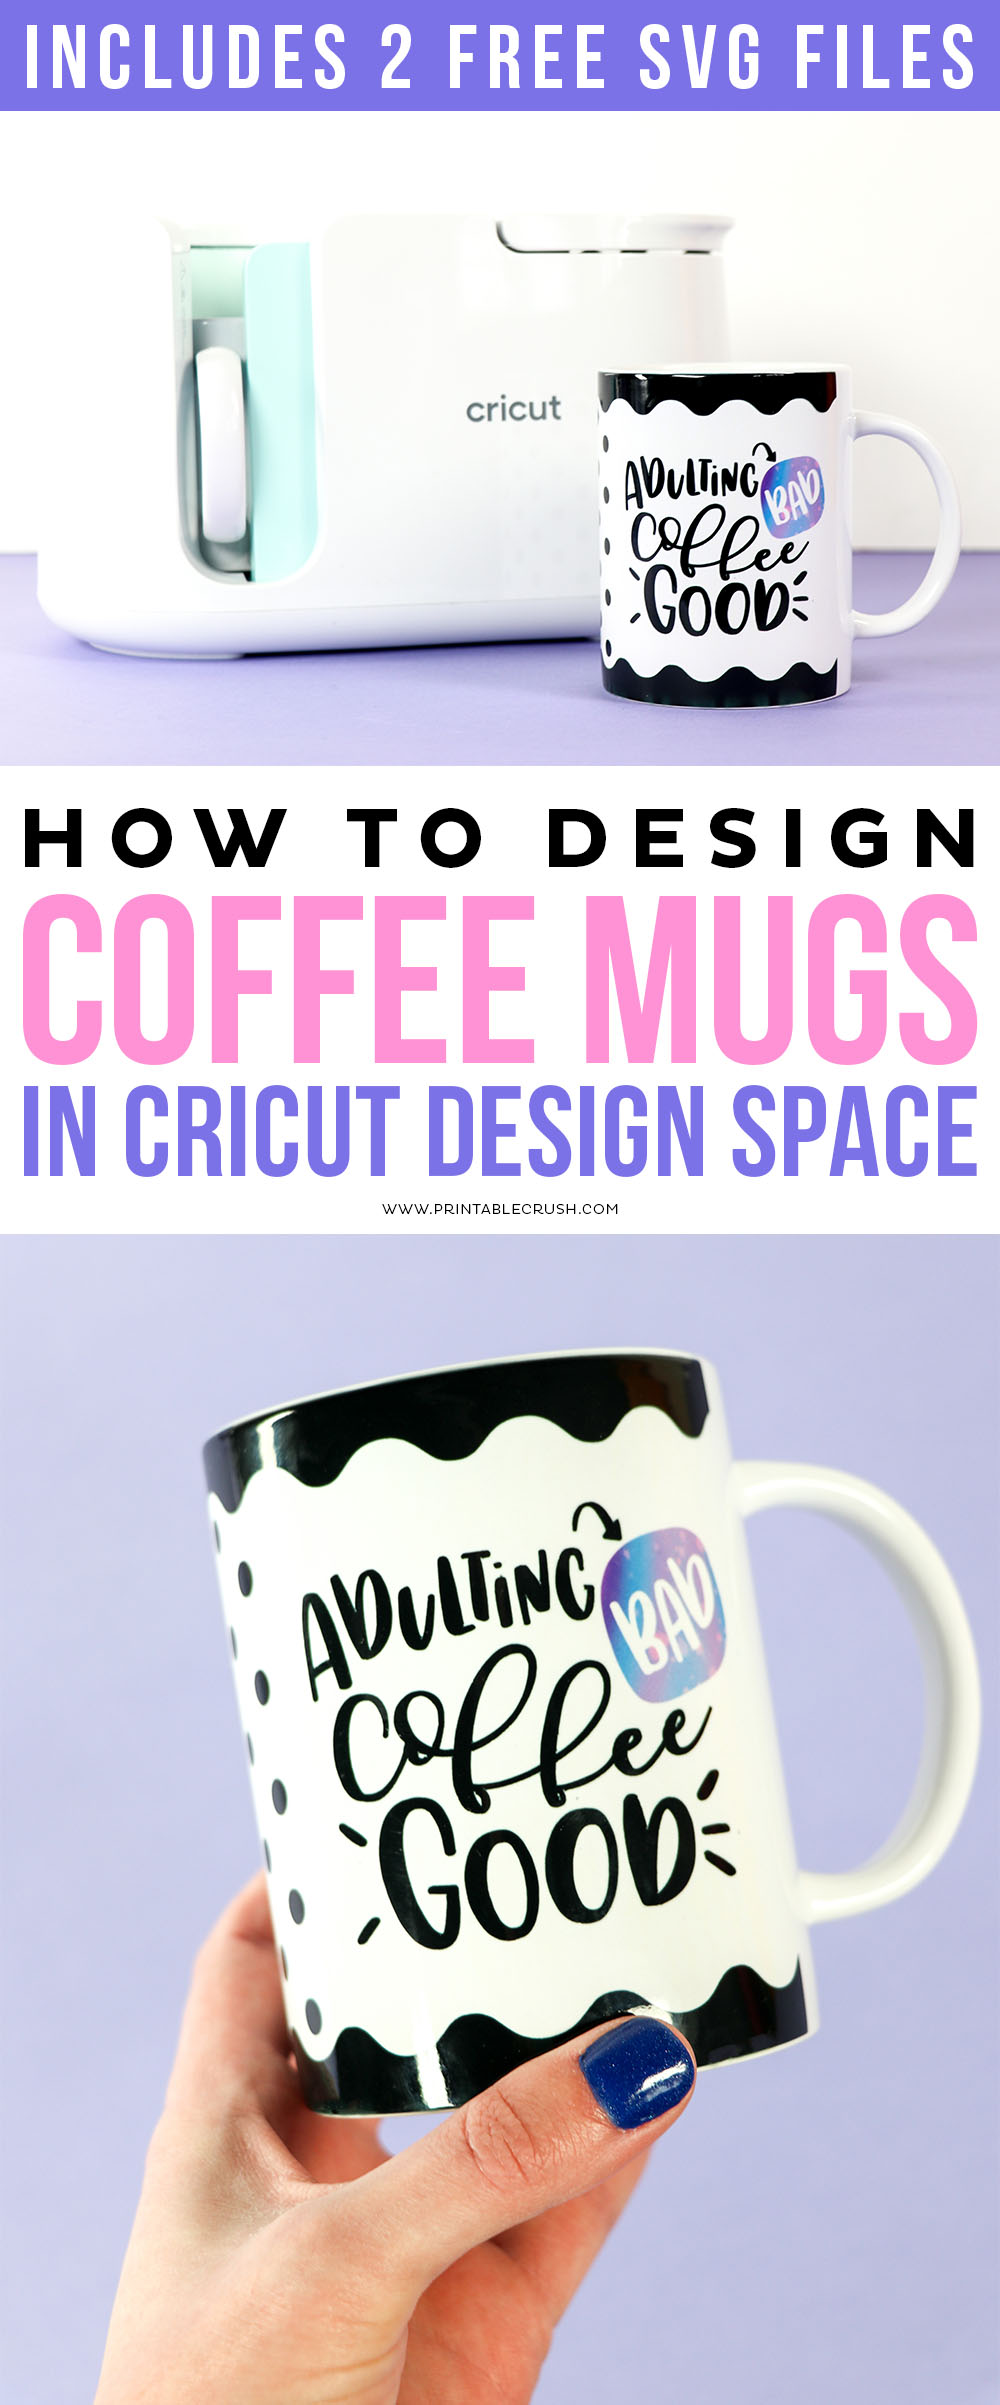 Learn how to upload SVG Files to use for Mugs in Cricut Design Space to use with your Cricut MugPress. Includes a FREE Coffee Quote SVG File! via @printablecrush